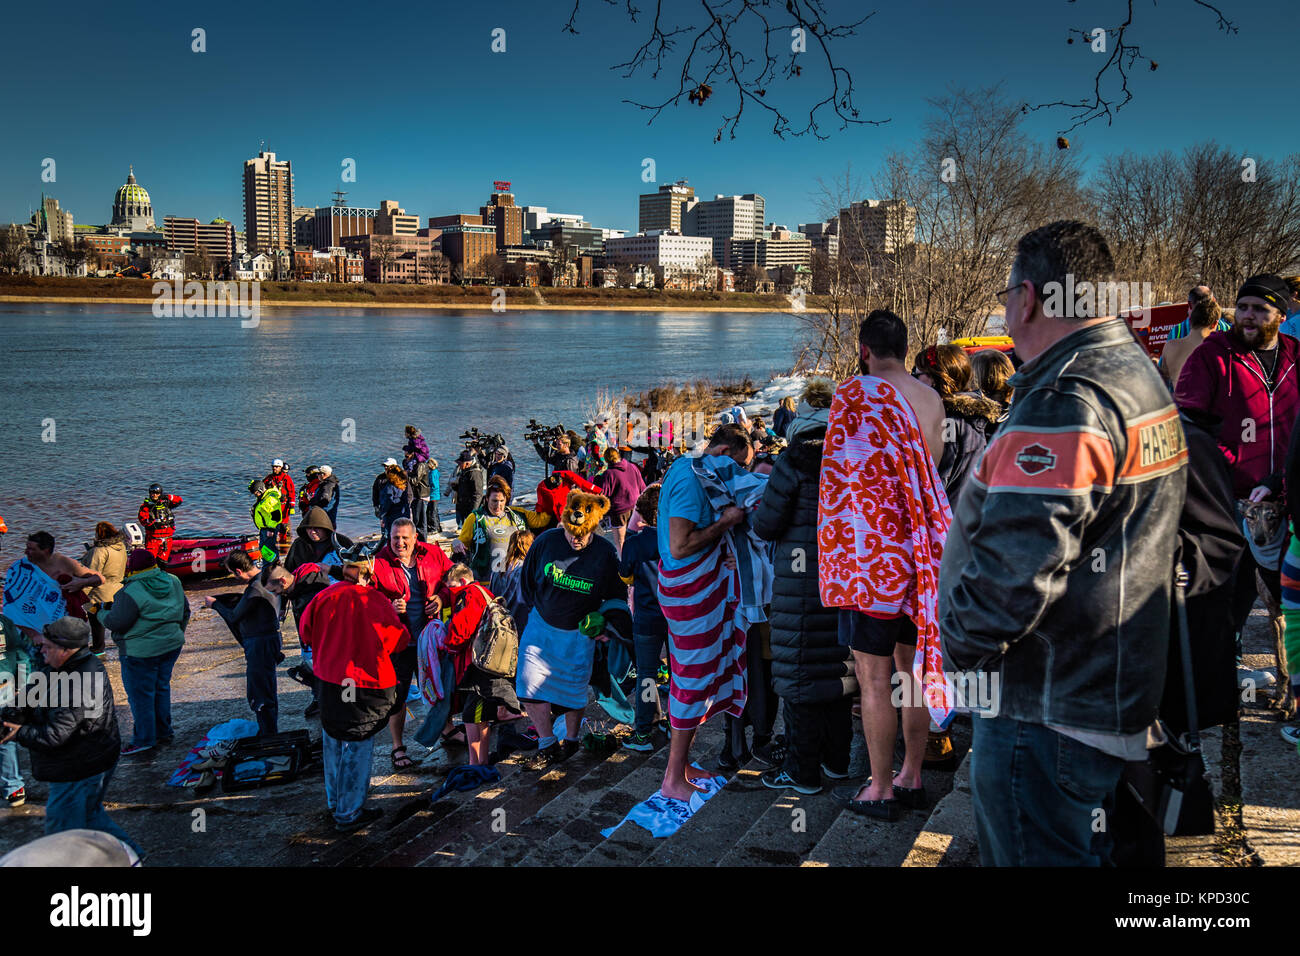 Harrisburg, PA - January 1, 2017: Drying off at the annual New Year's Day event of plunging into the Susquehanna - Stock Image